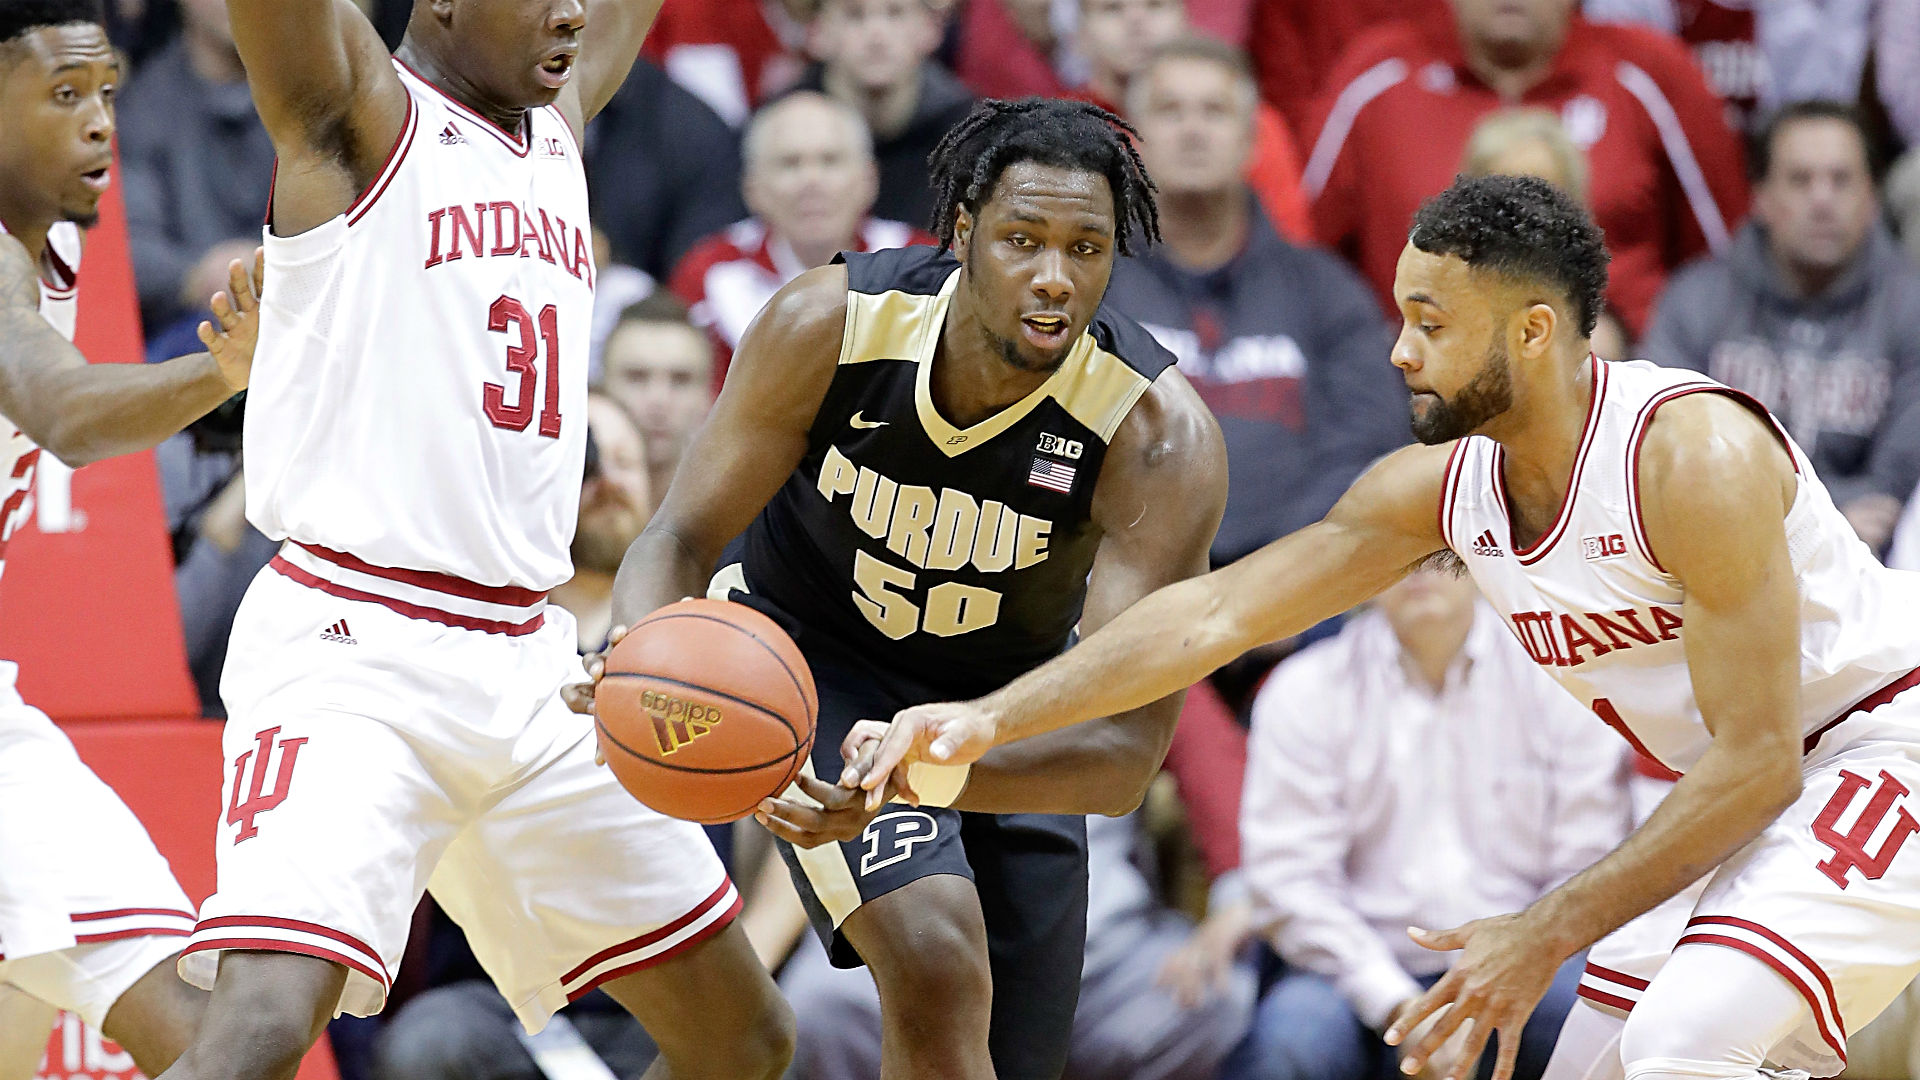 Purdue beats IU 69-64 at Assembly Hall